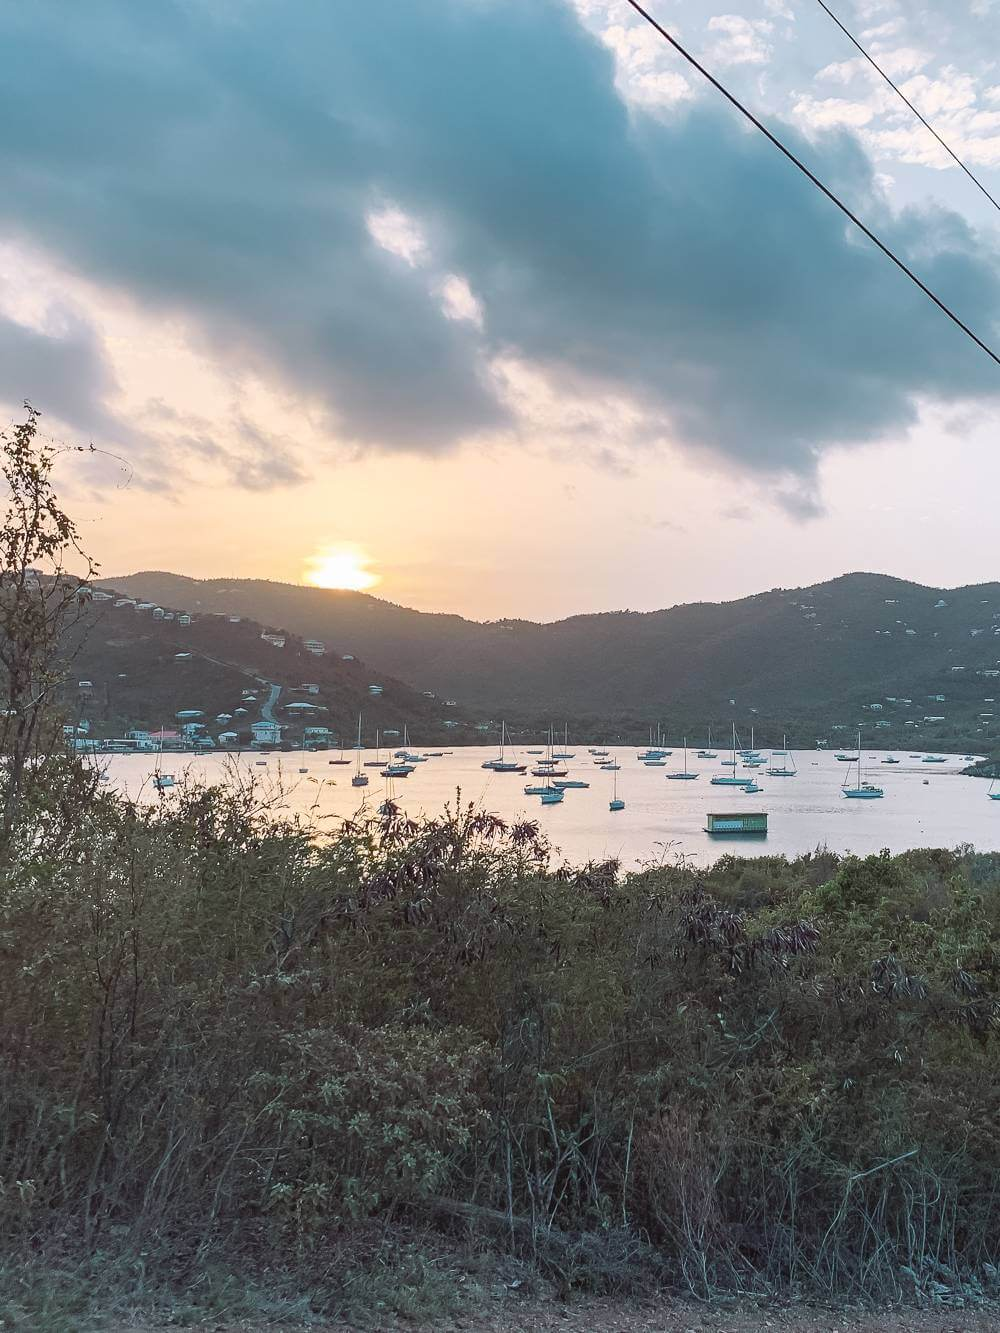 View of Lime Out in Coral Harbor from the hills of St John USVI